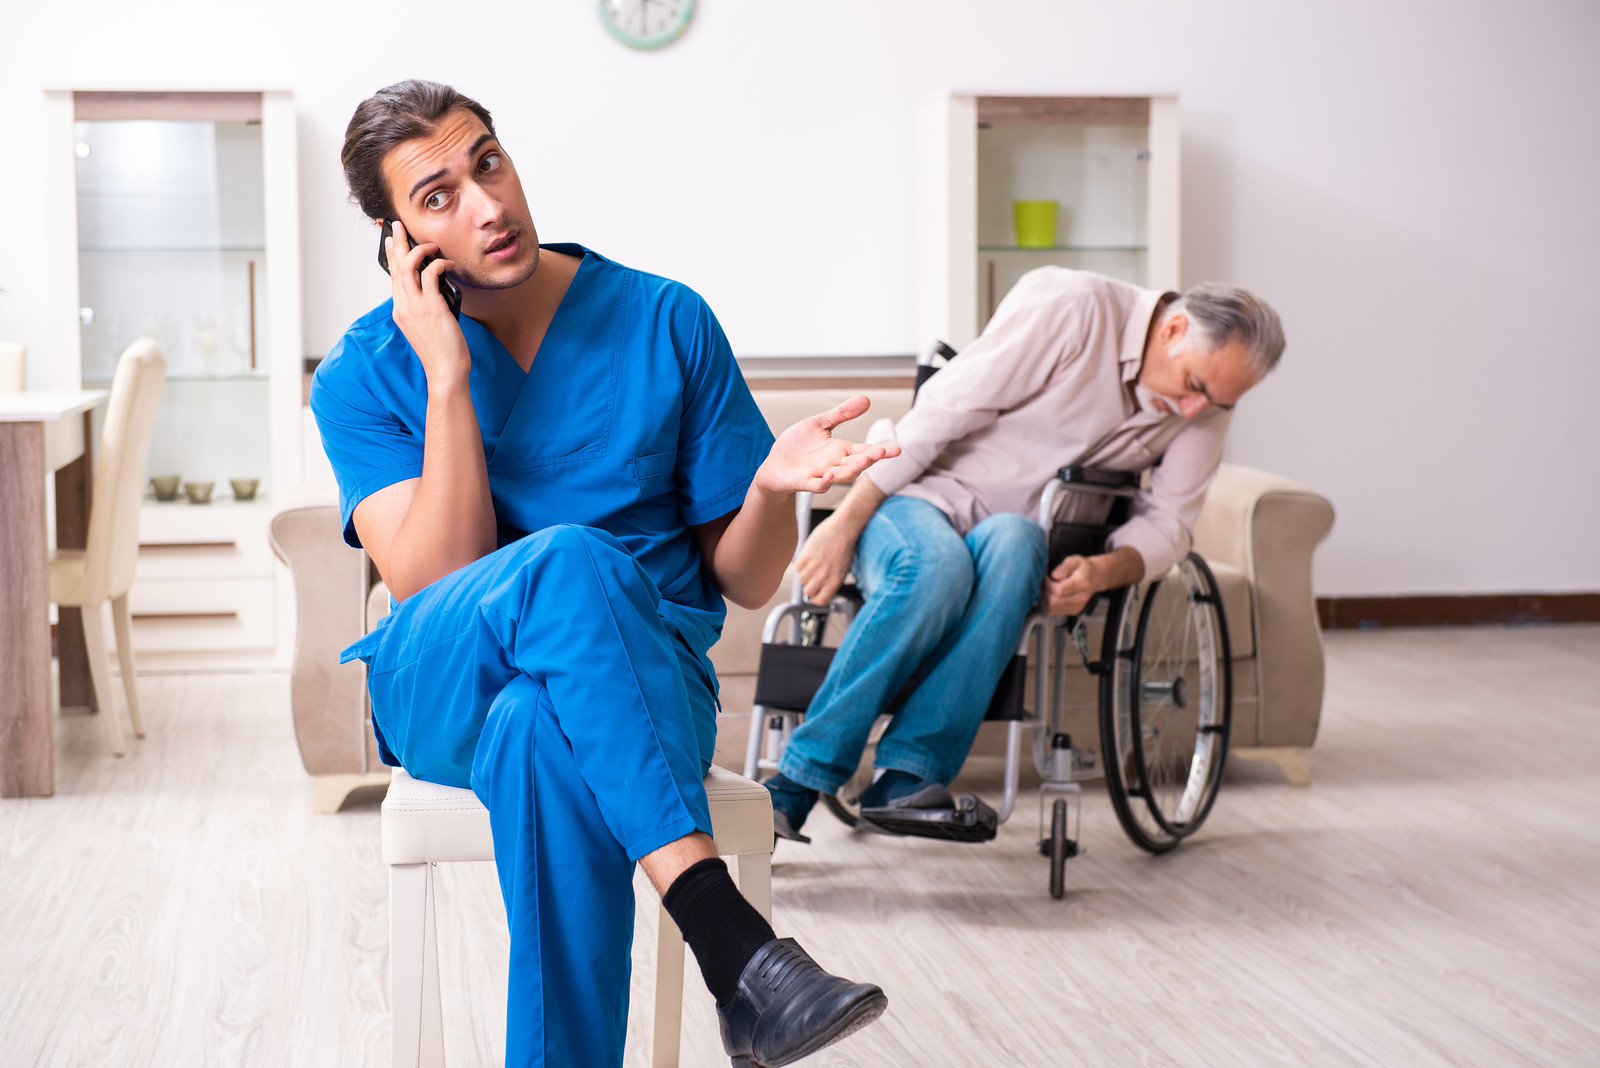 Senior man in wheelchair slumped over, male caregiver sitting in chair nearby on his cell phone ignoring the senior man in need